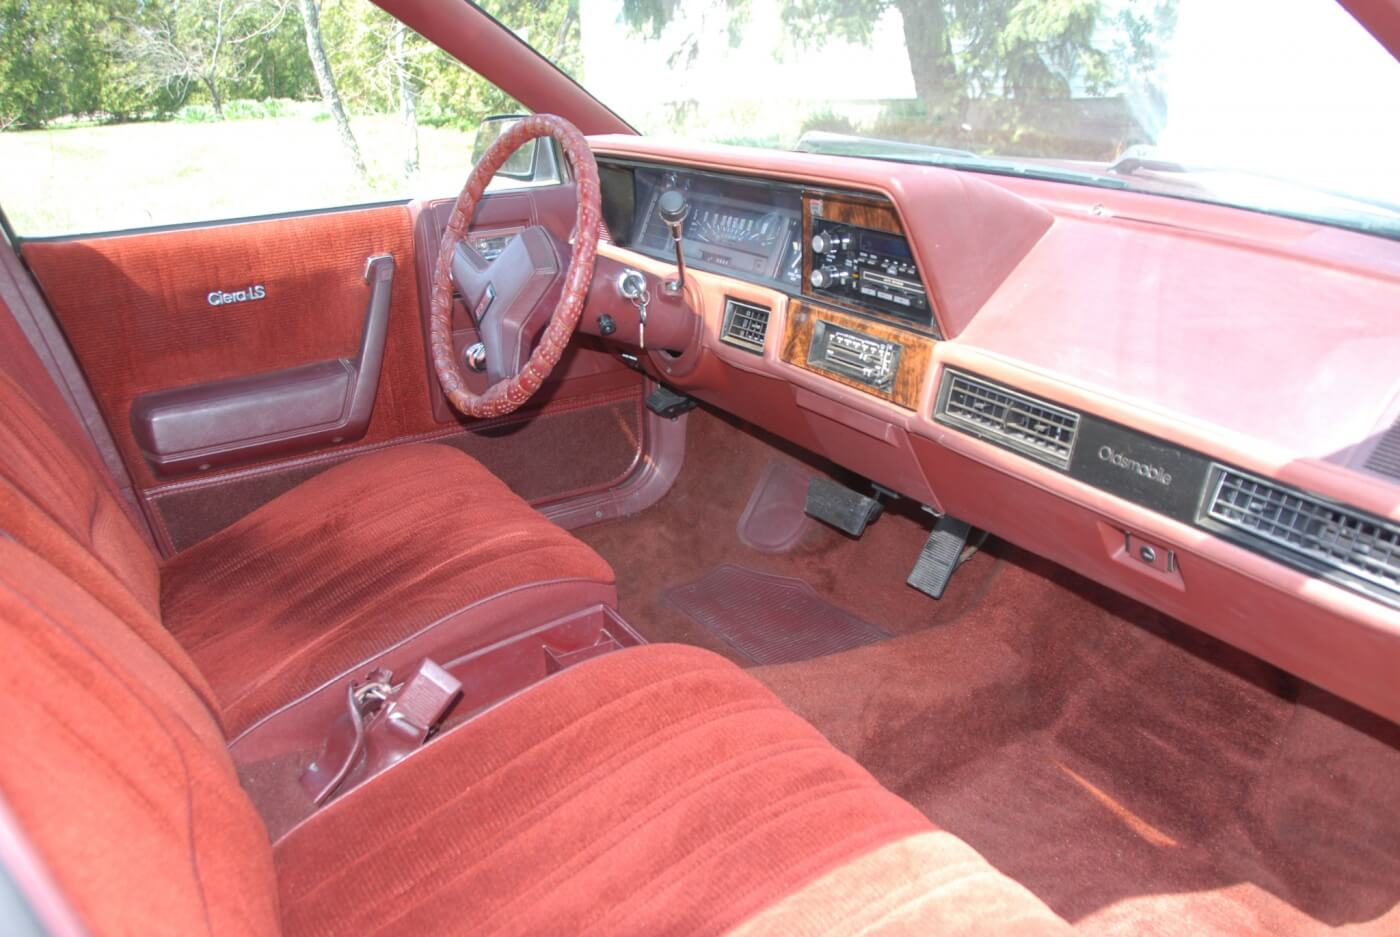 Even though this was the baseline interior, it's not badly appointed. Diesel models had a lot of extra sound deadening to keep them quiet and comfortable. A/C was not standard but this car has it.